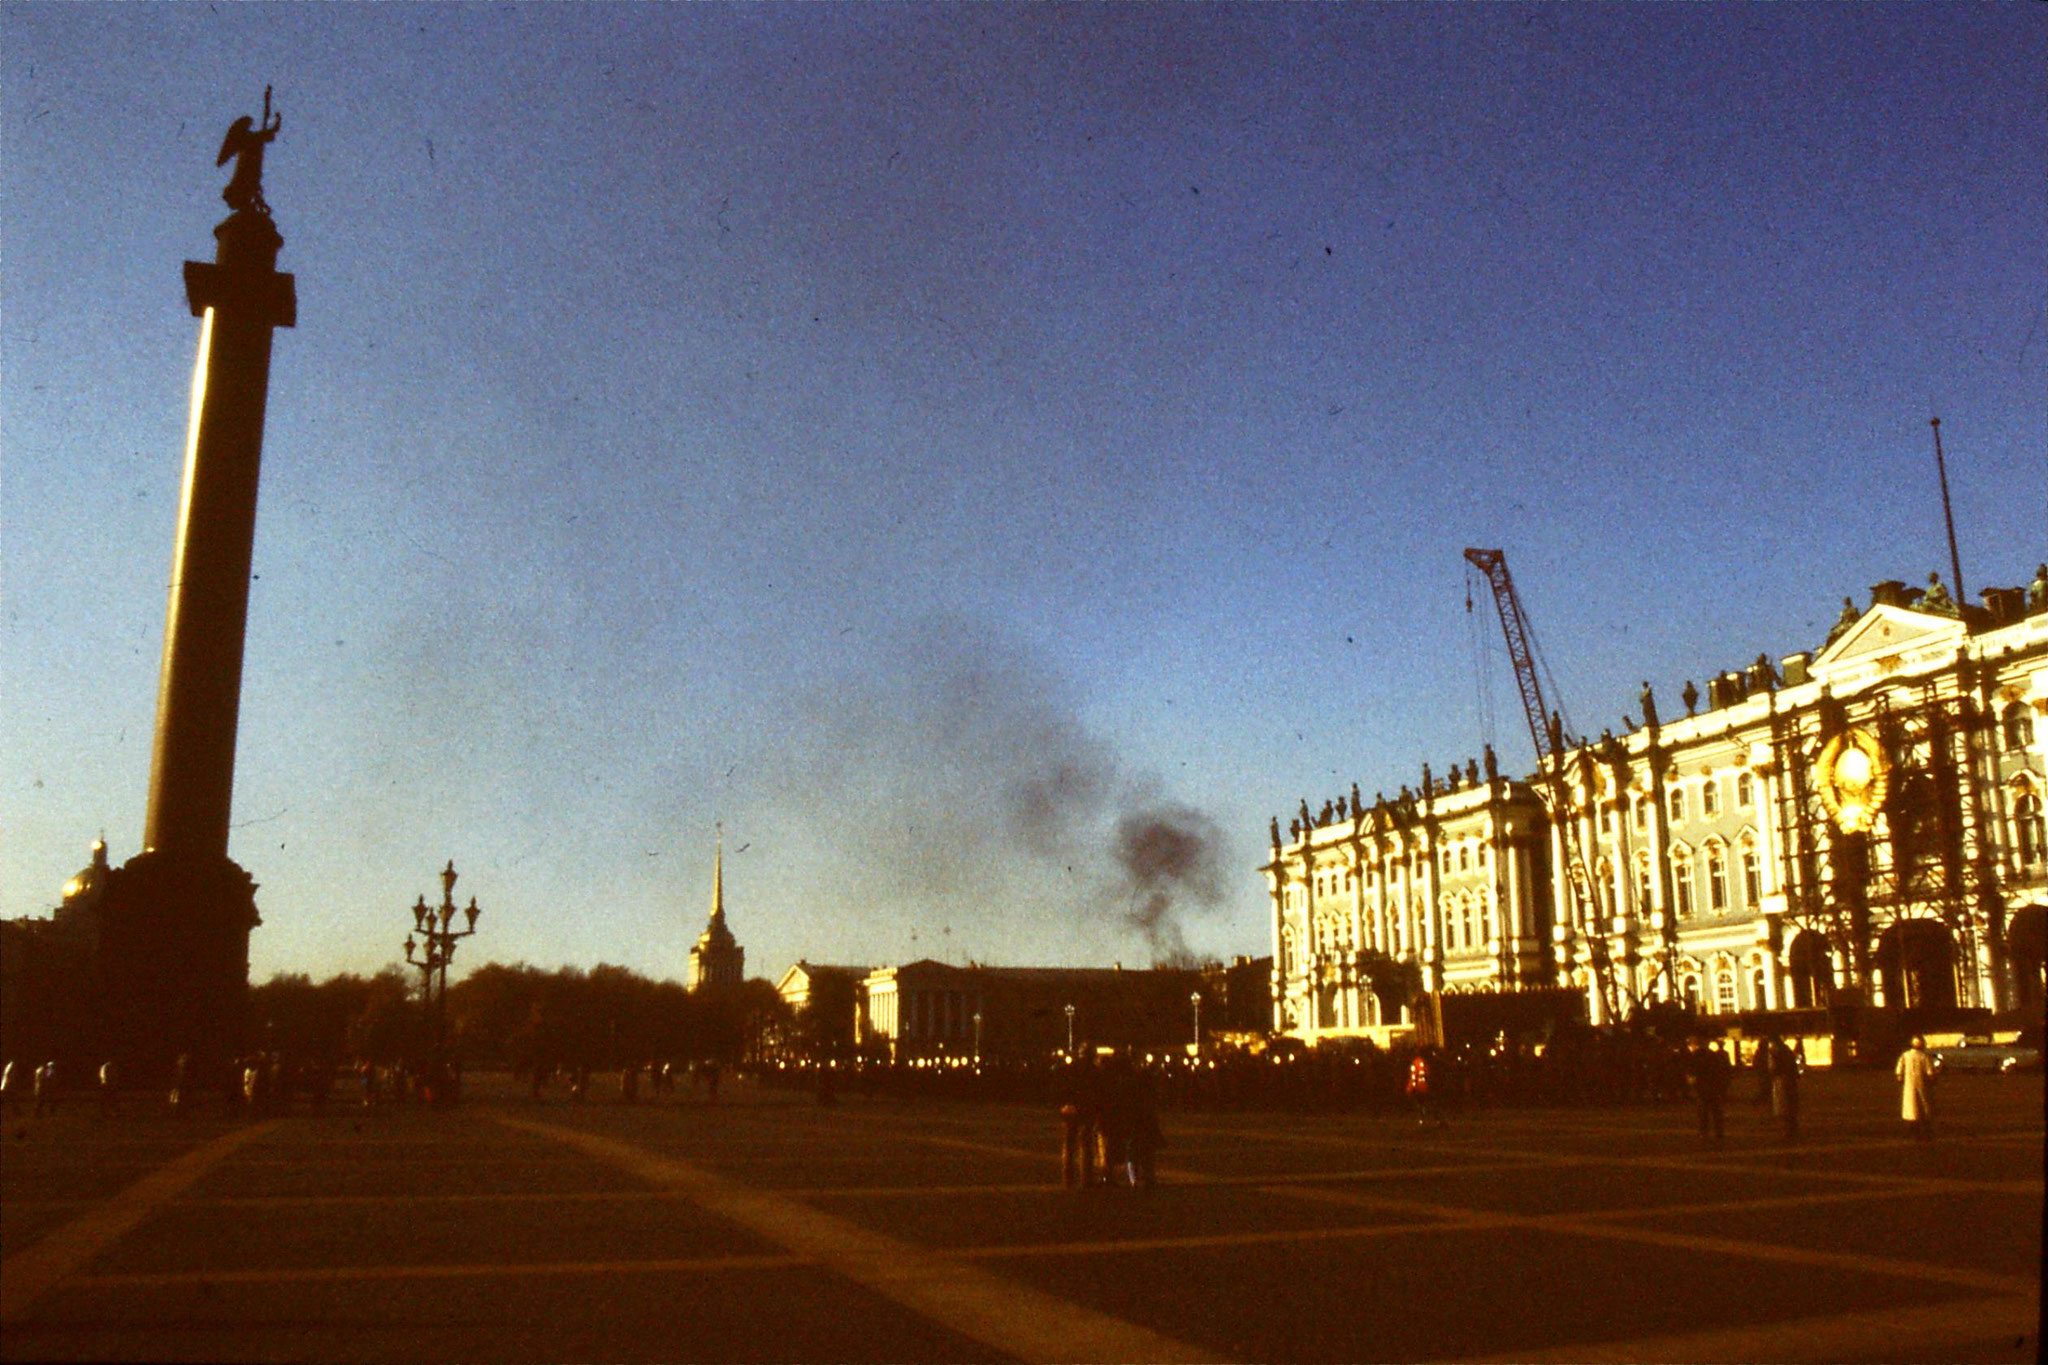 13/10/1988: 15: Leningrad band in front of Hermitage